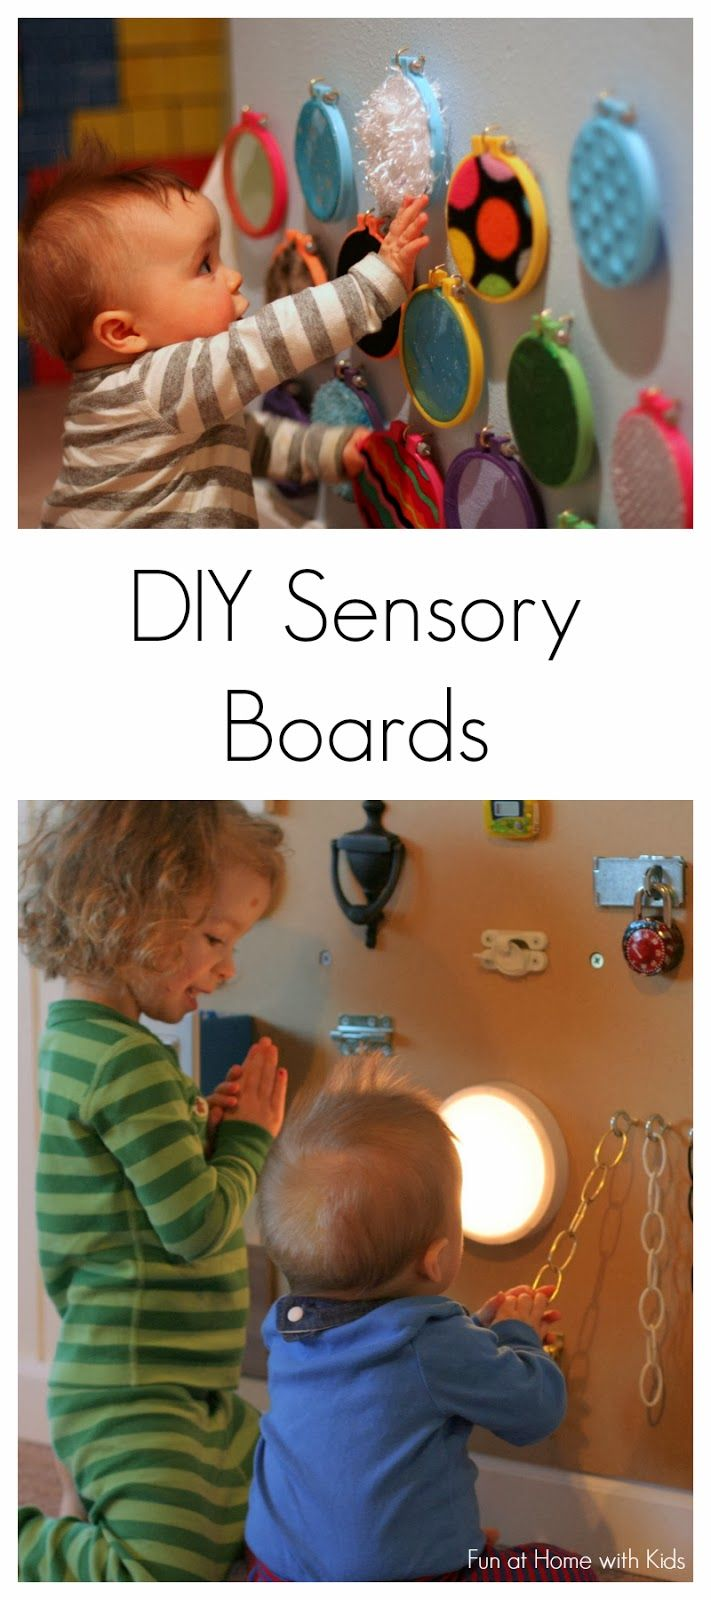 DIY sensory walls, great for the kiddos! - J